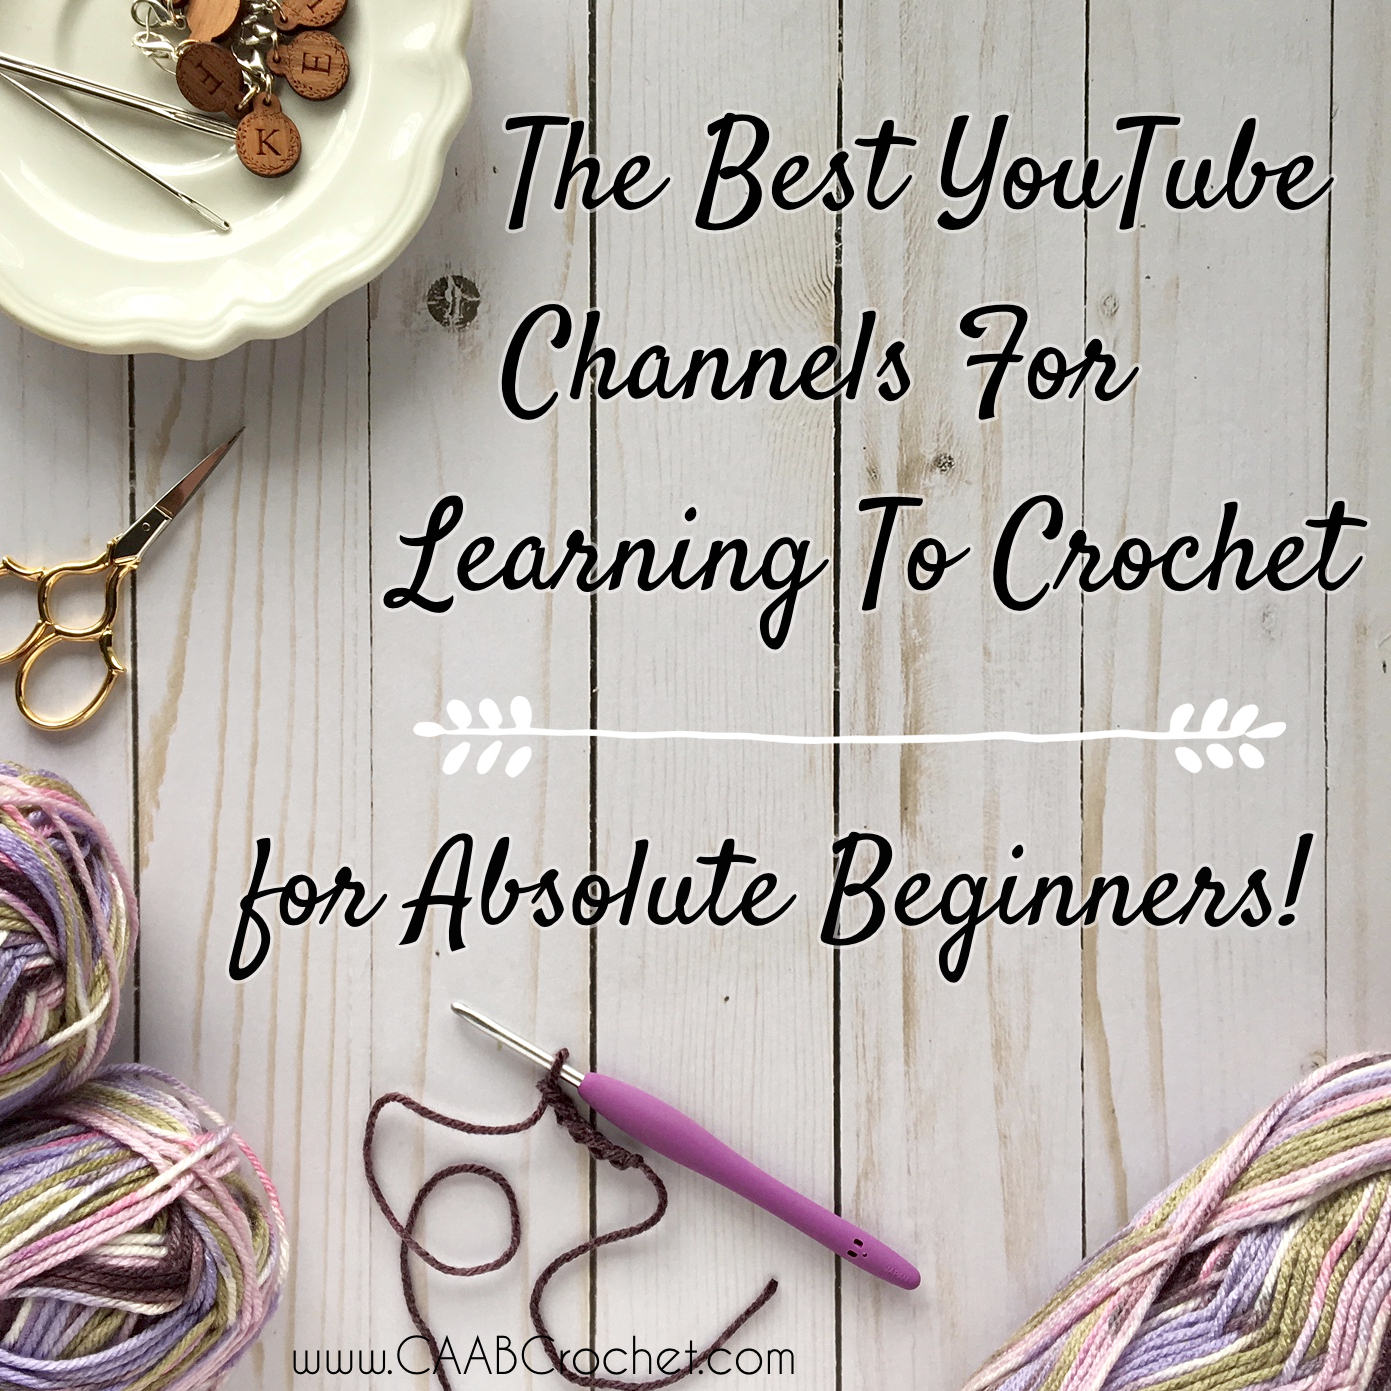 The Best Youtube Channels For Learning To Crochet Cute As A Button